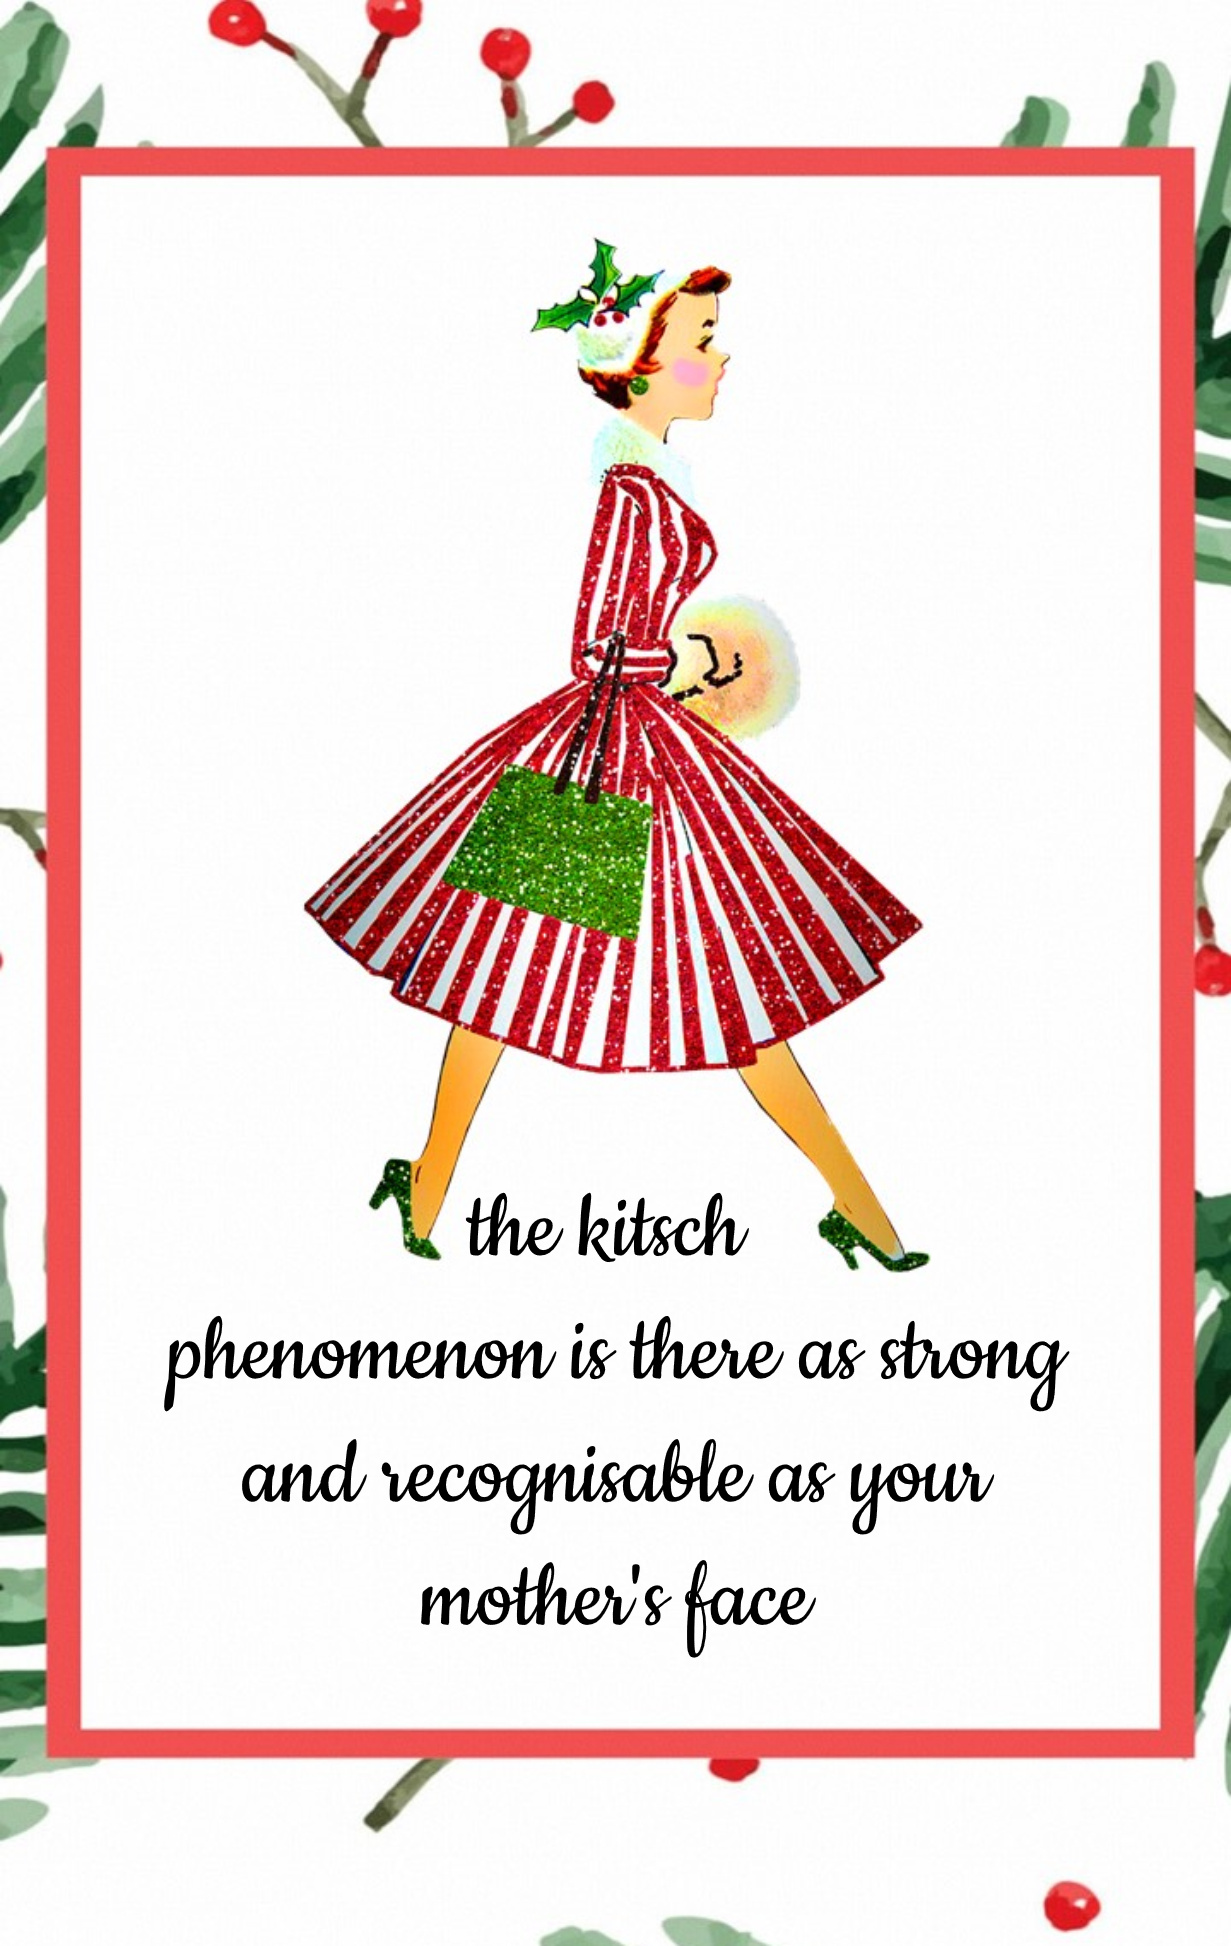 the kitsch phenomenon is there as strong and recognisable as your mother's face Roger Scruton Quote bekitschig blog Christmas Kitsch